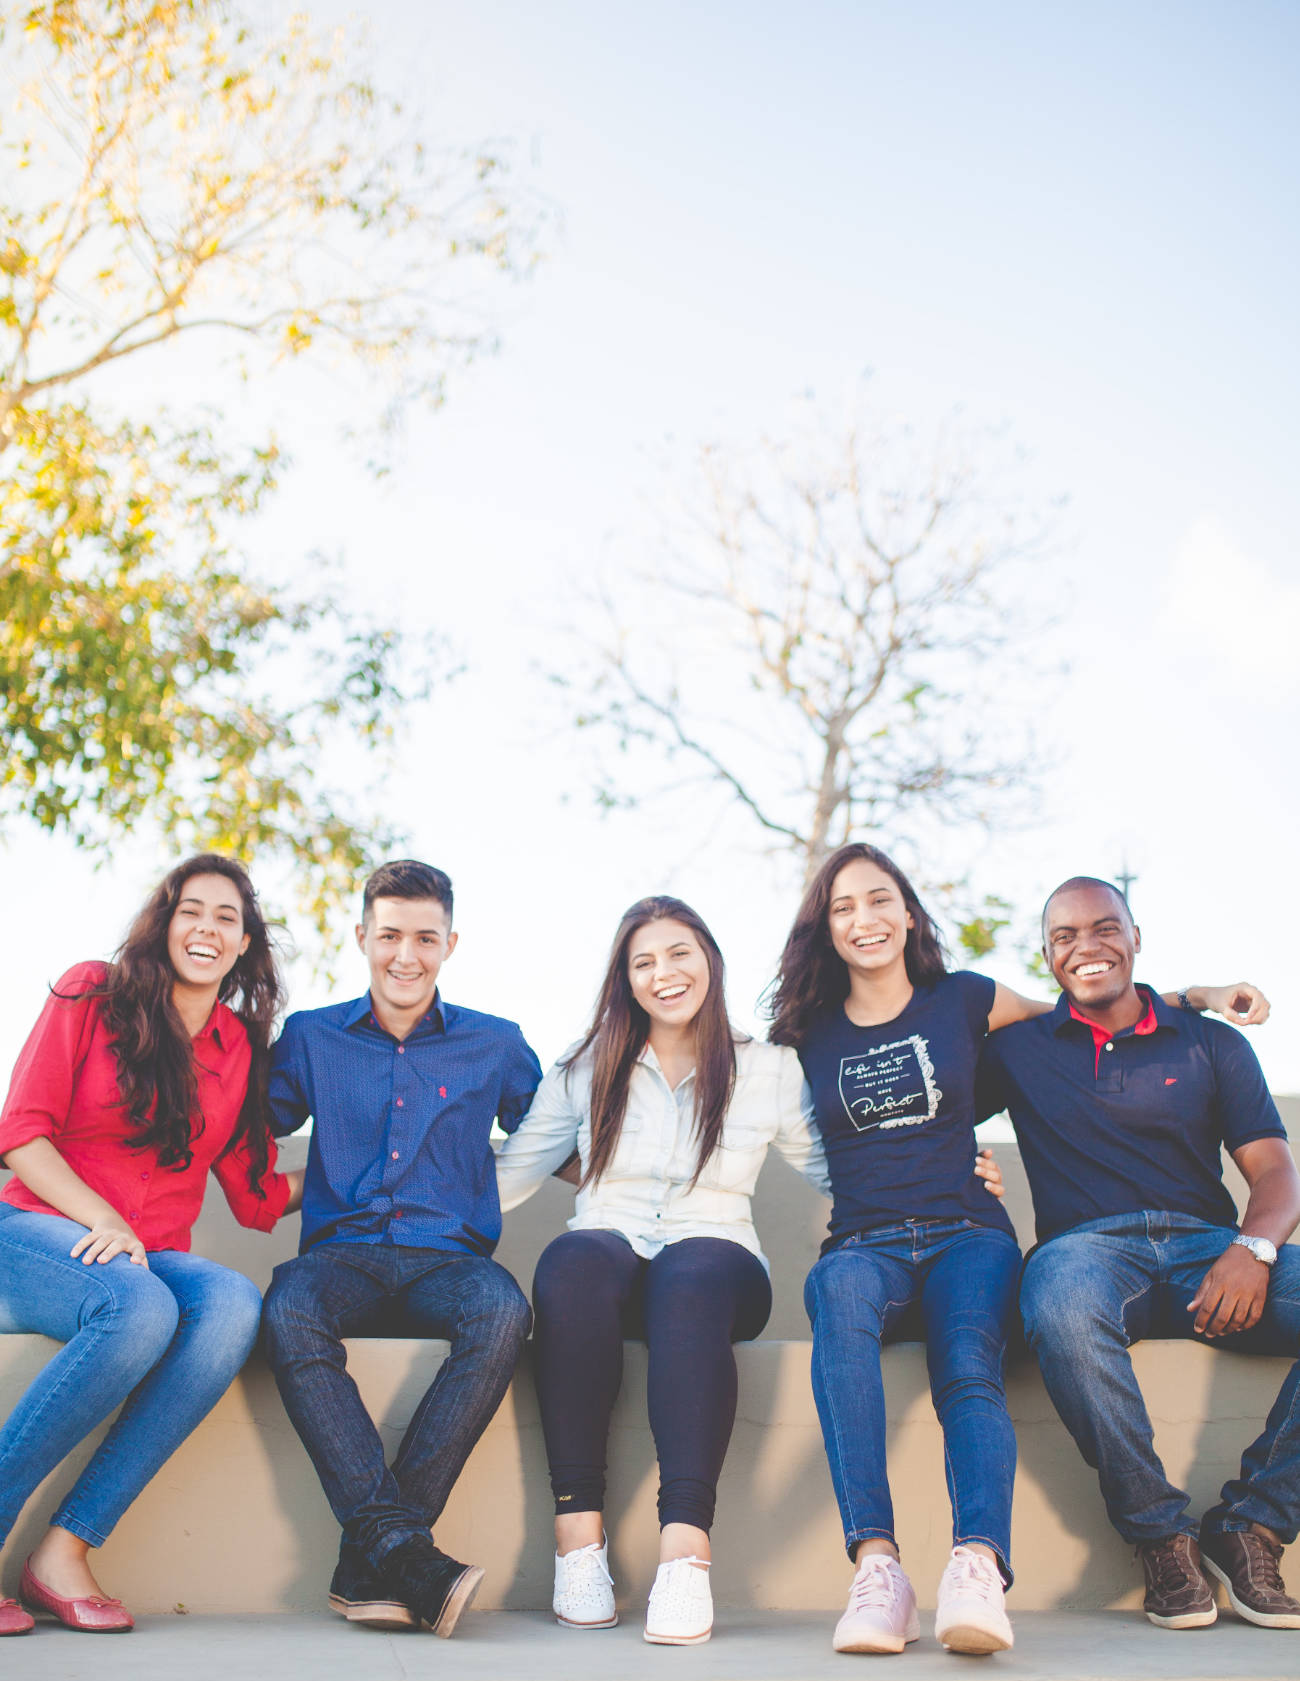 A group of happy young people sitting down posing for the camera